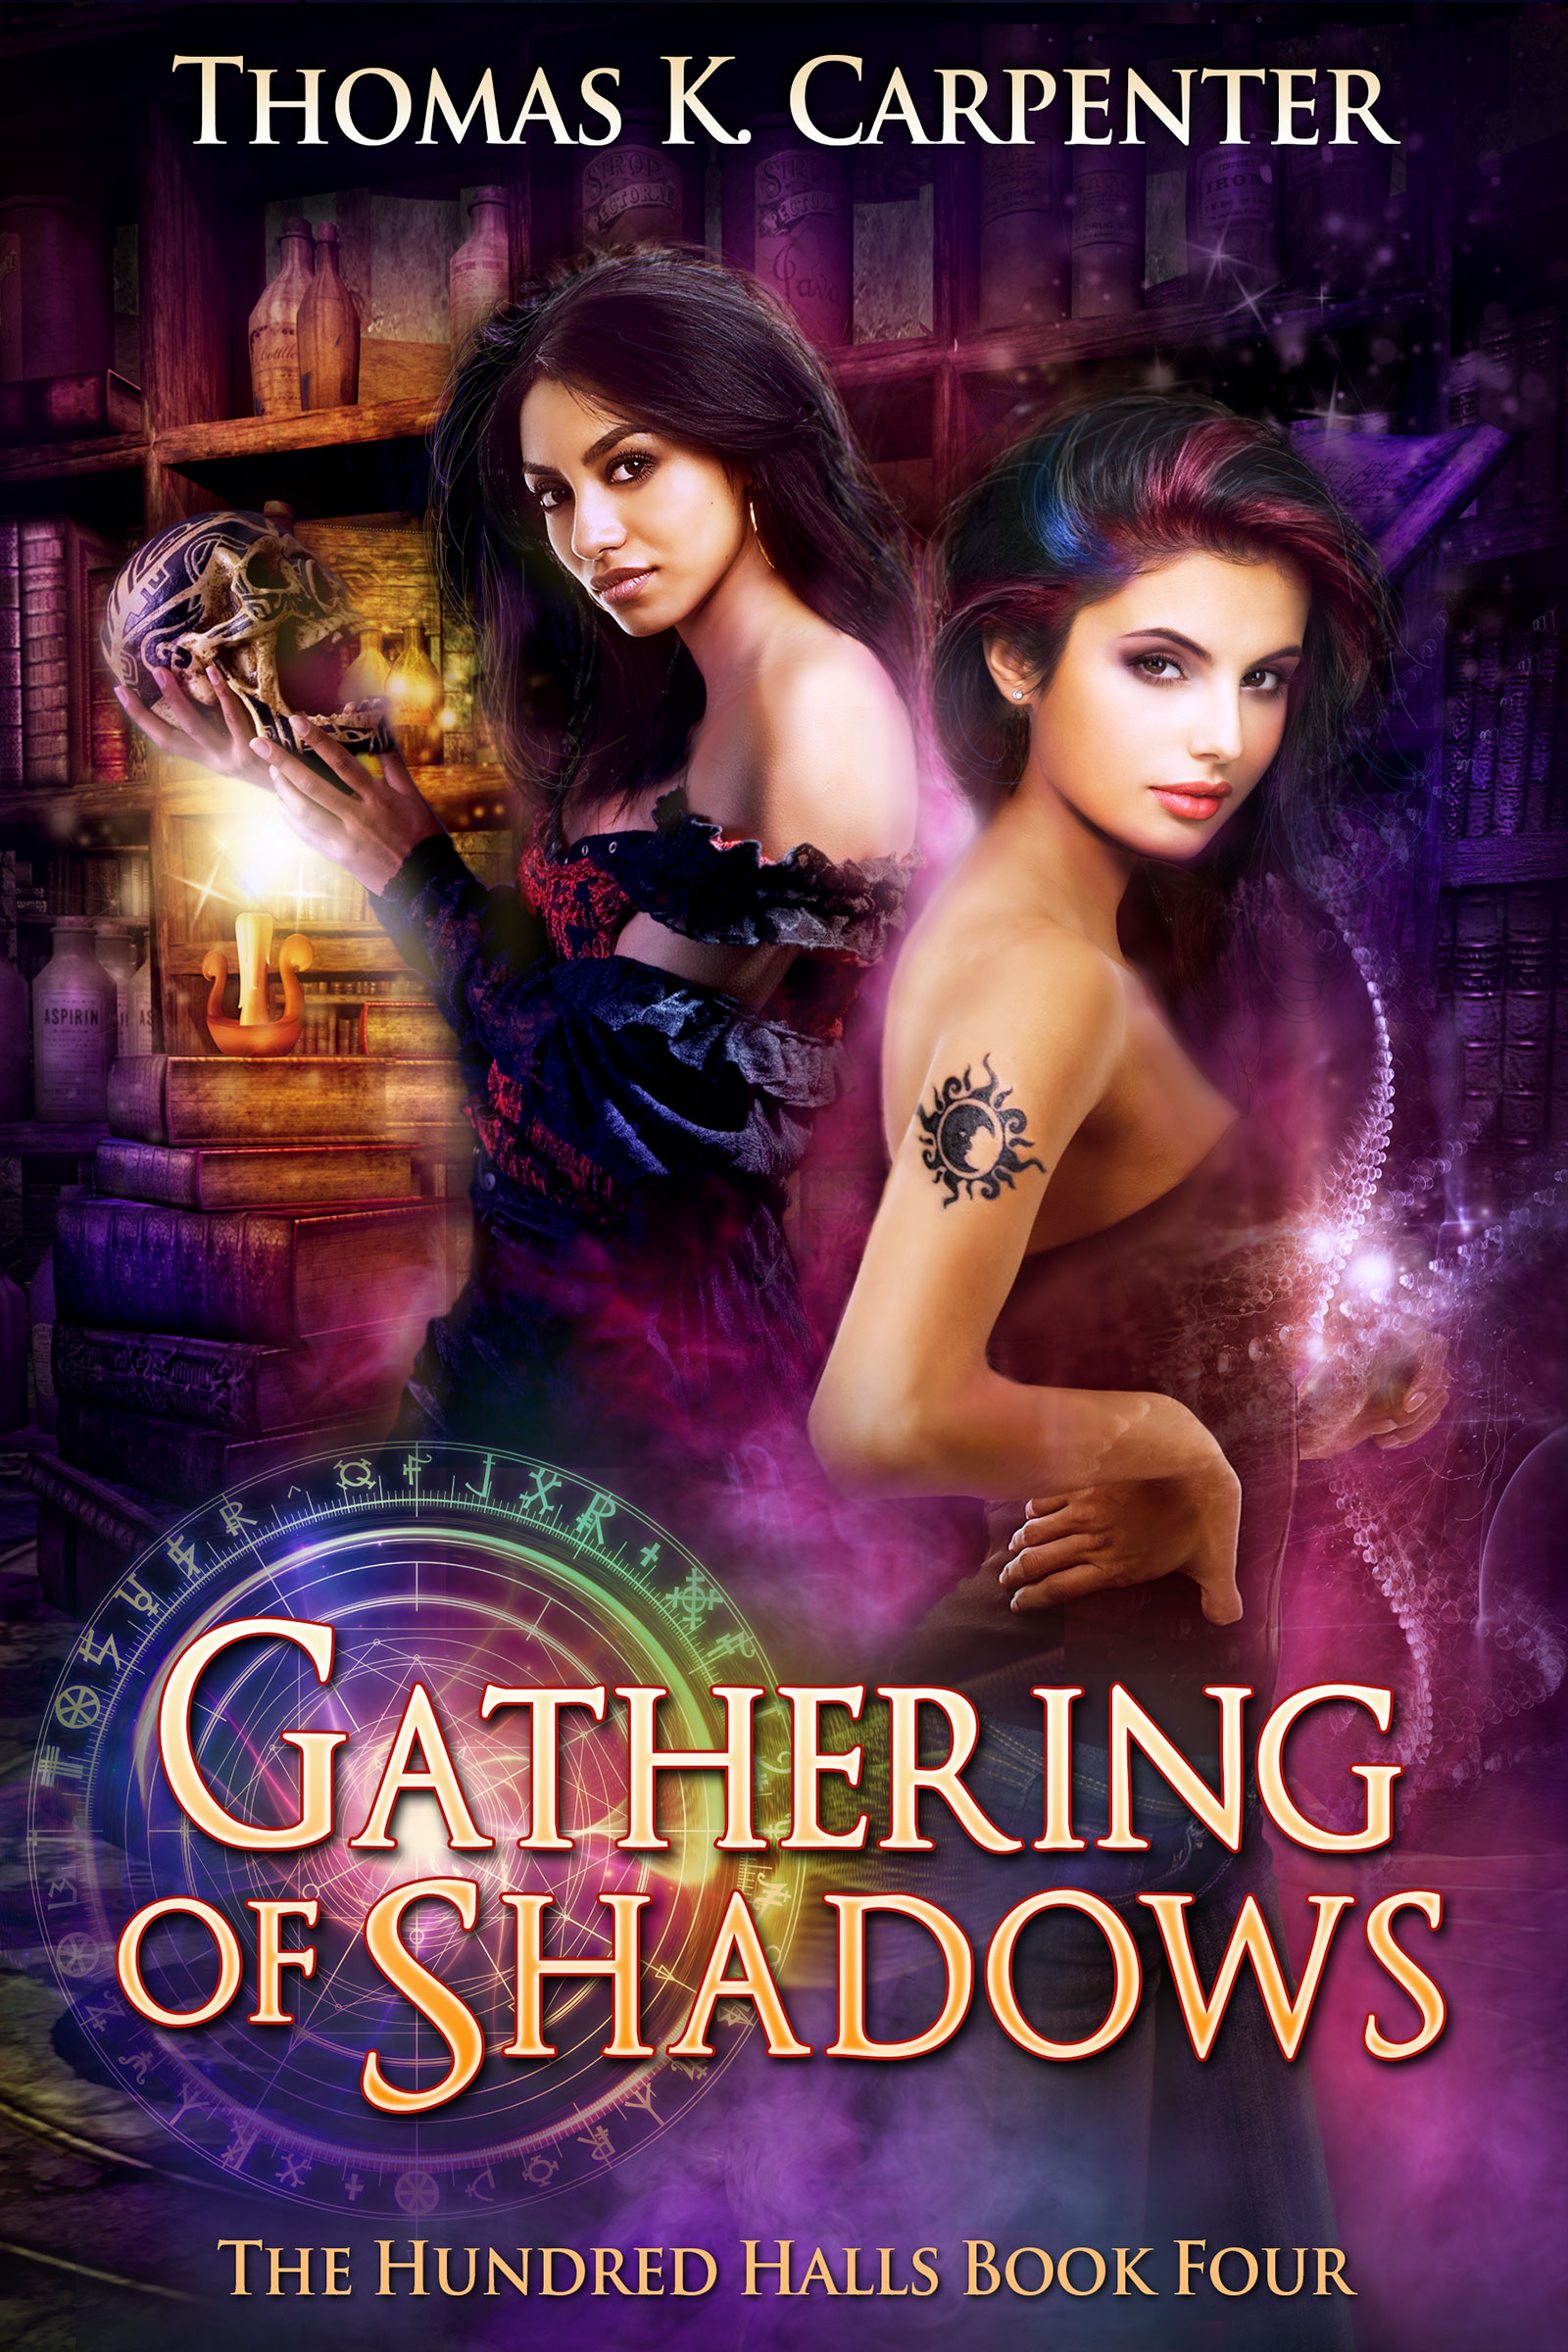 Gathering of Shadows, a contemporary fantasy novel by Thomas K. Carpenter